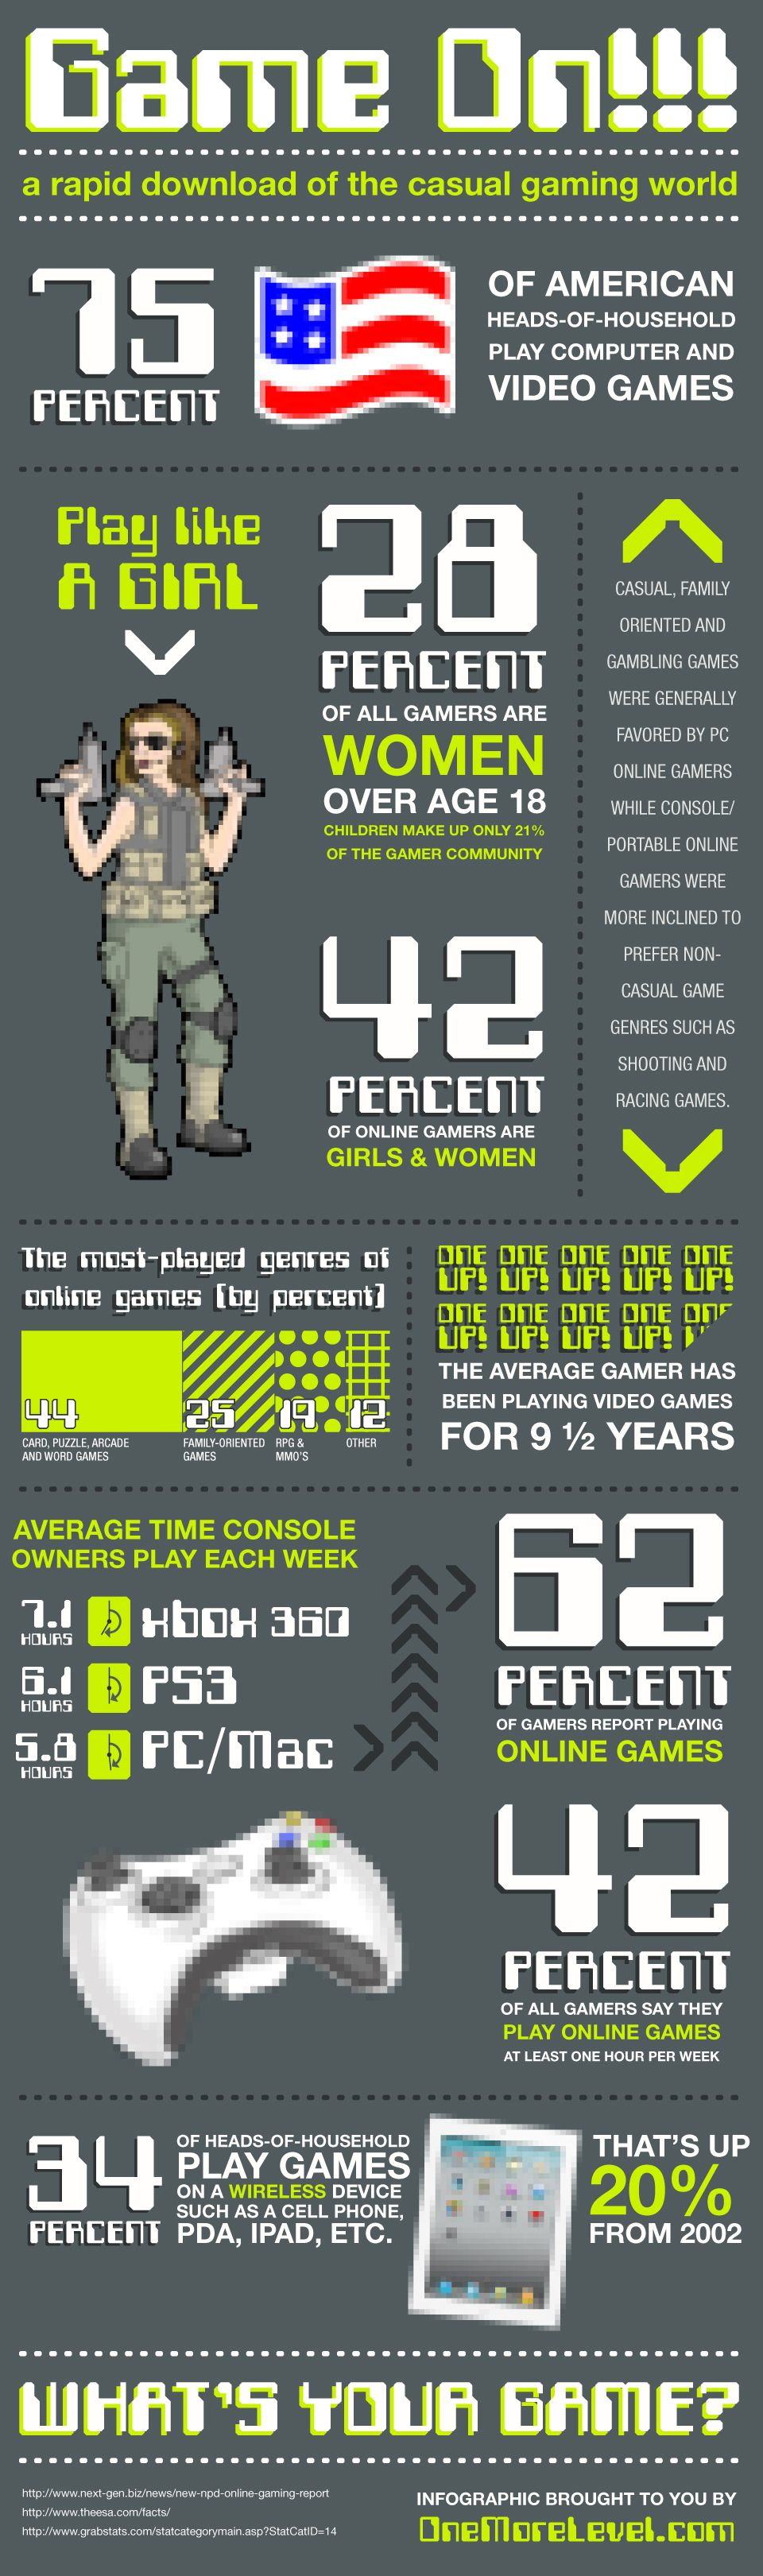 The Games People Play [INFOGRAPHIC] Online infographic